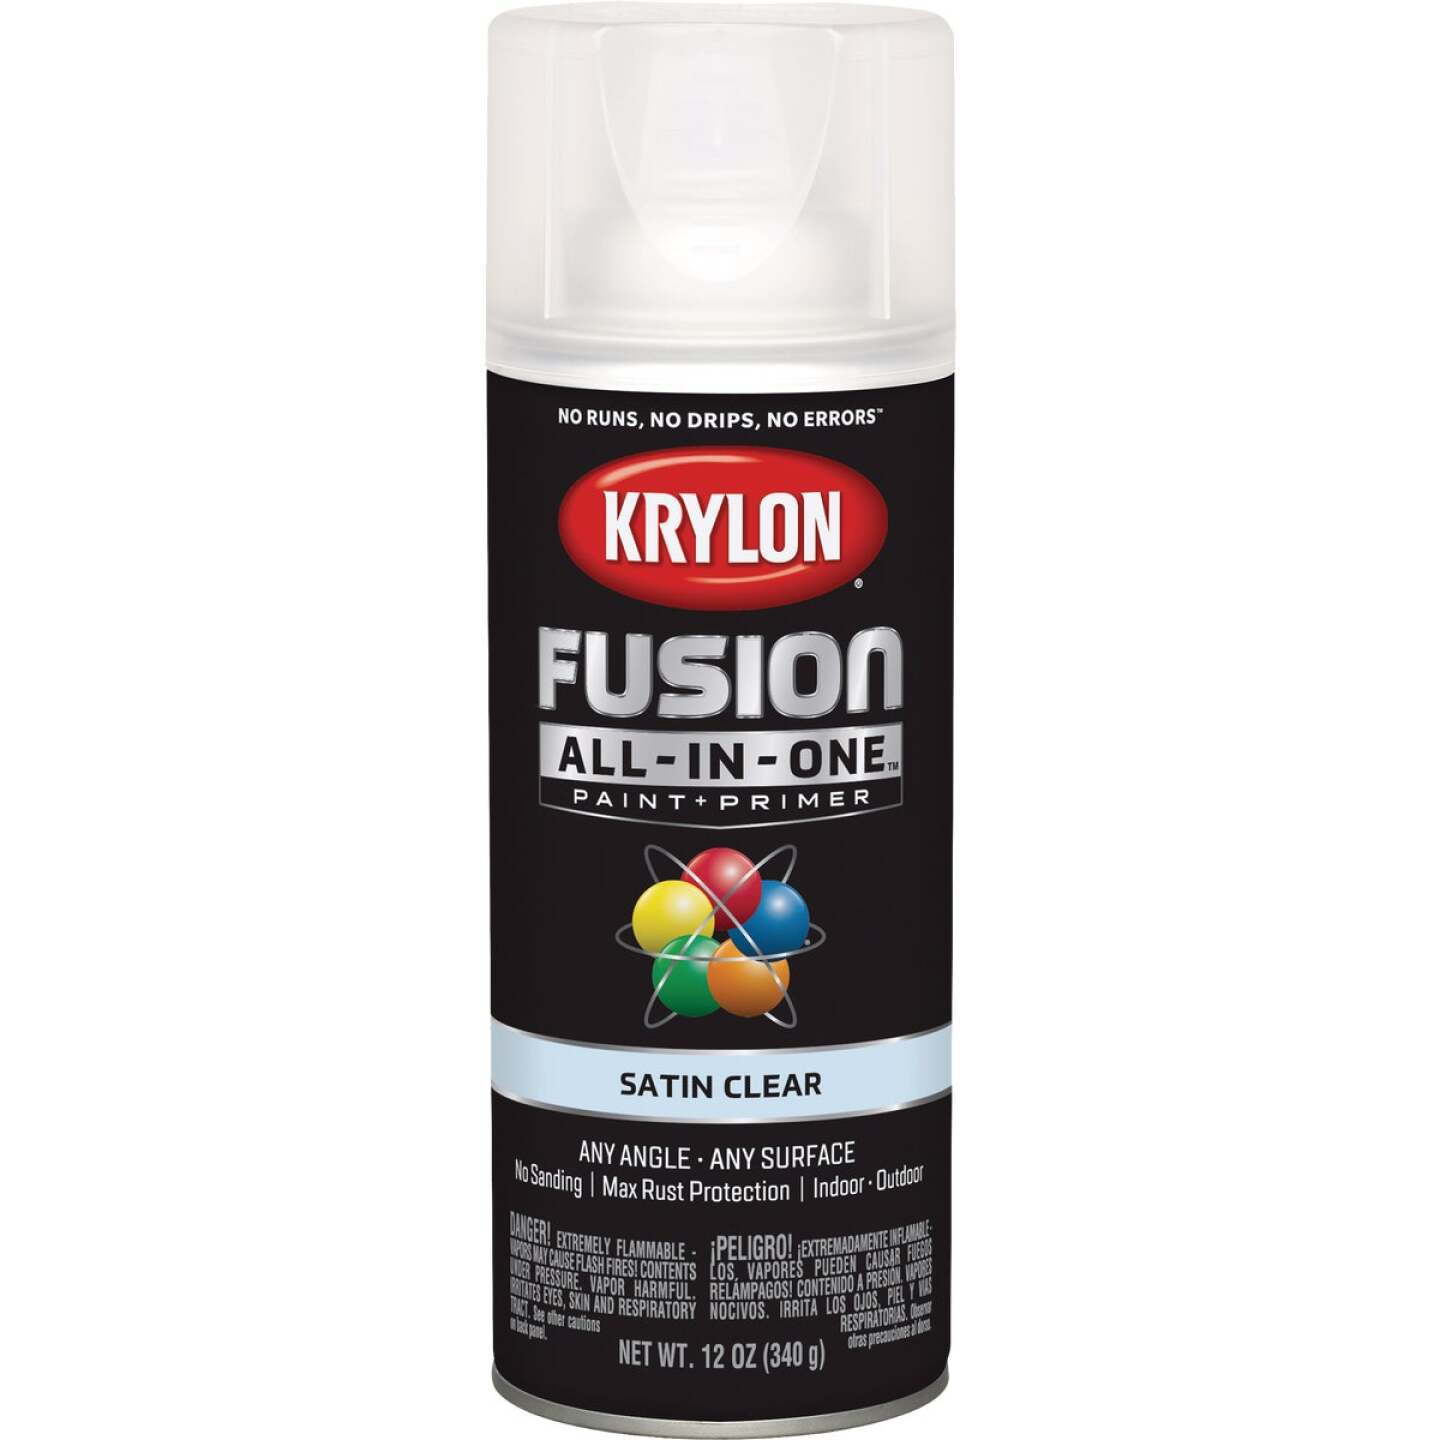 Krylon Fusion All-In-One Satin Spray Paint & Primer, Clear Image 1